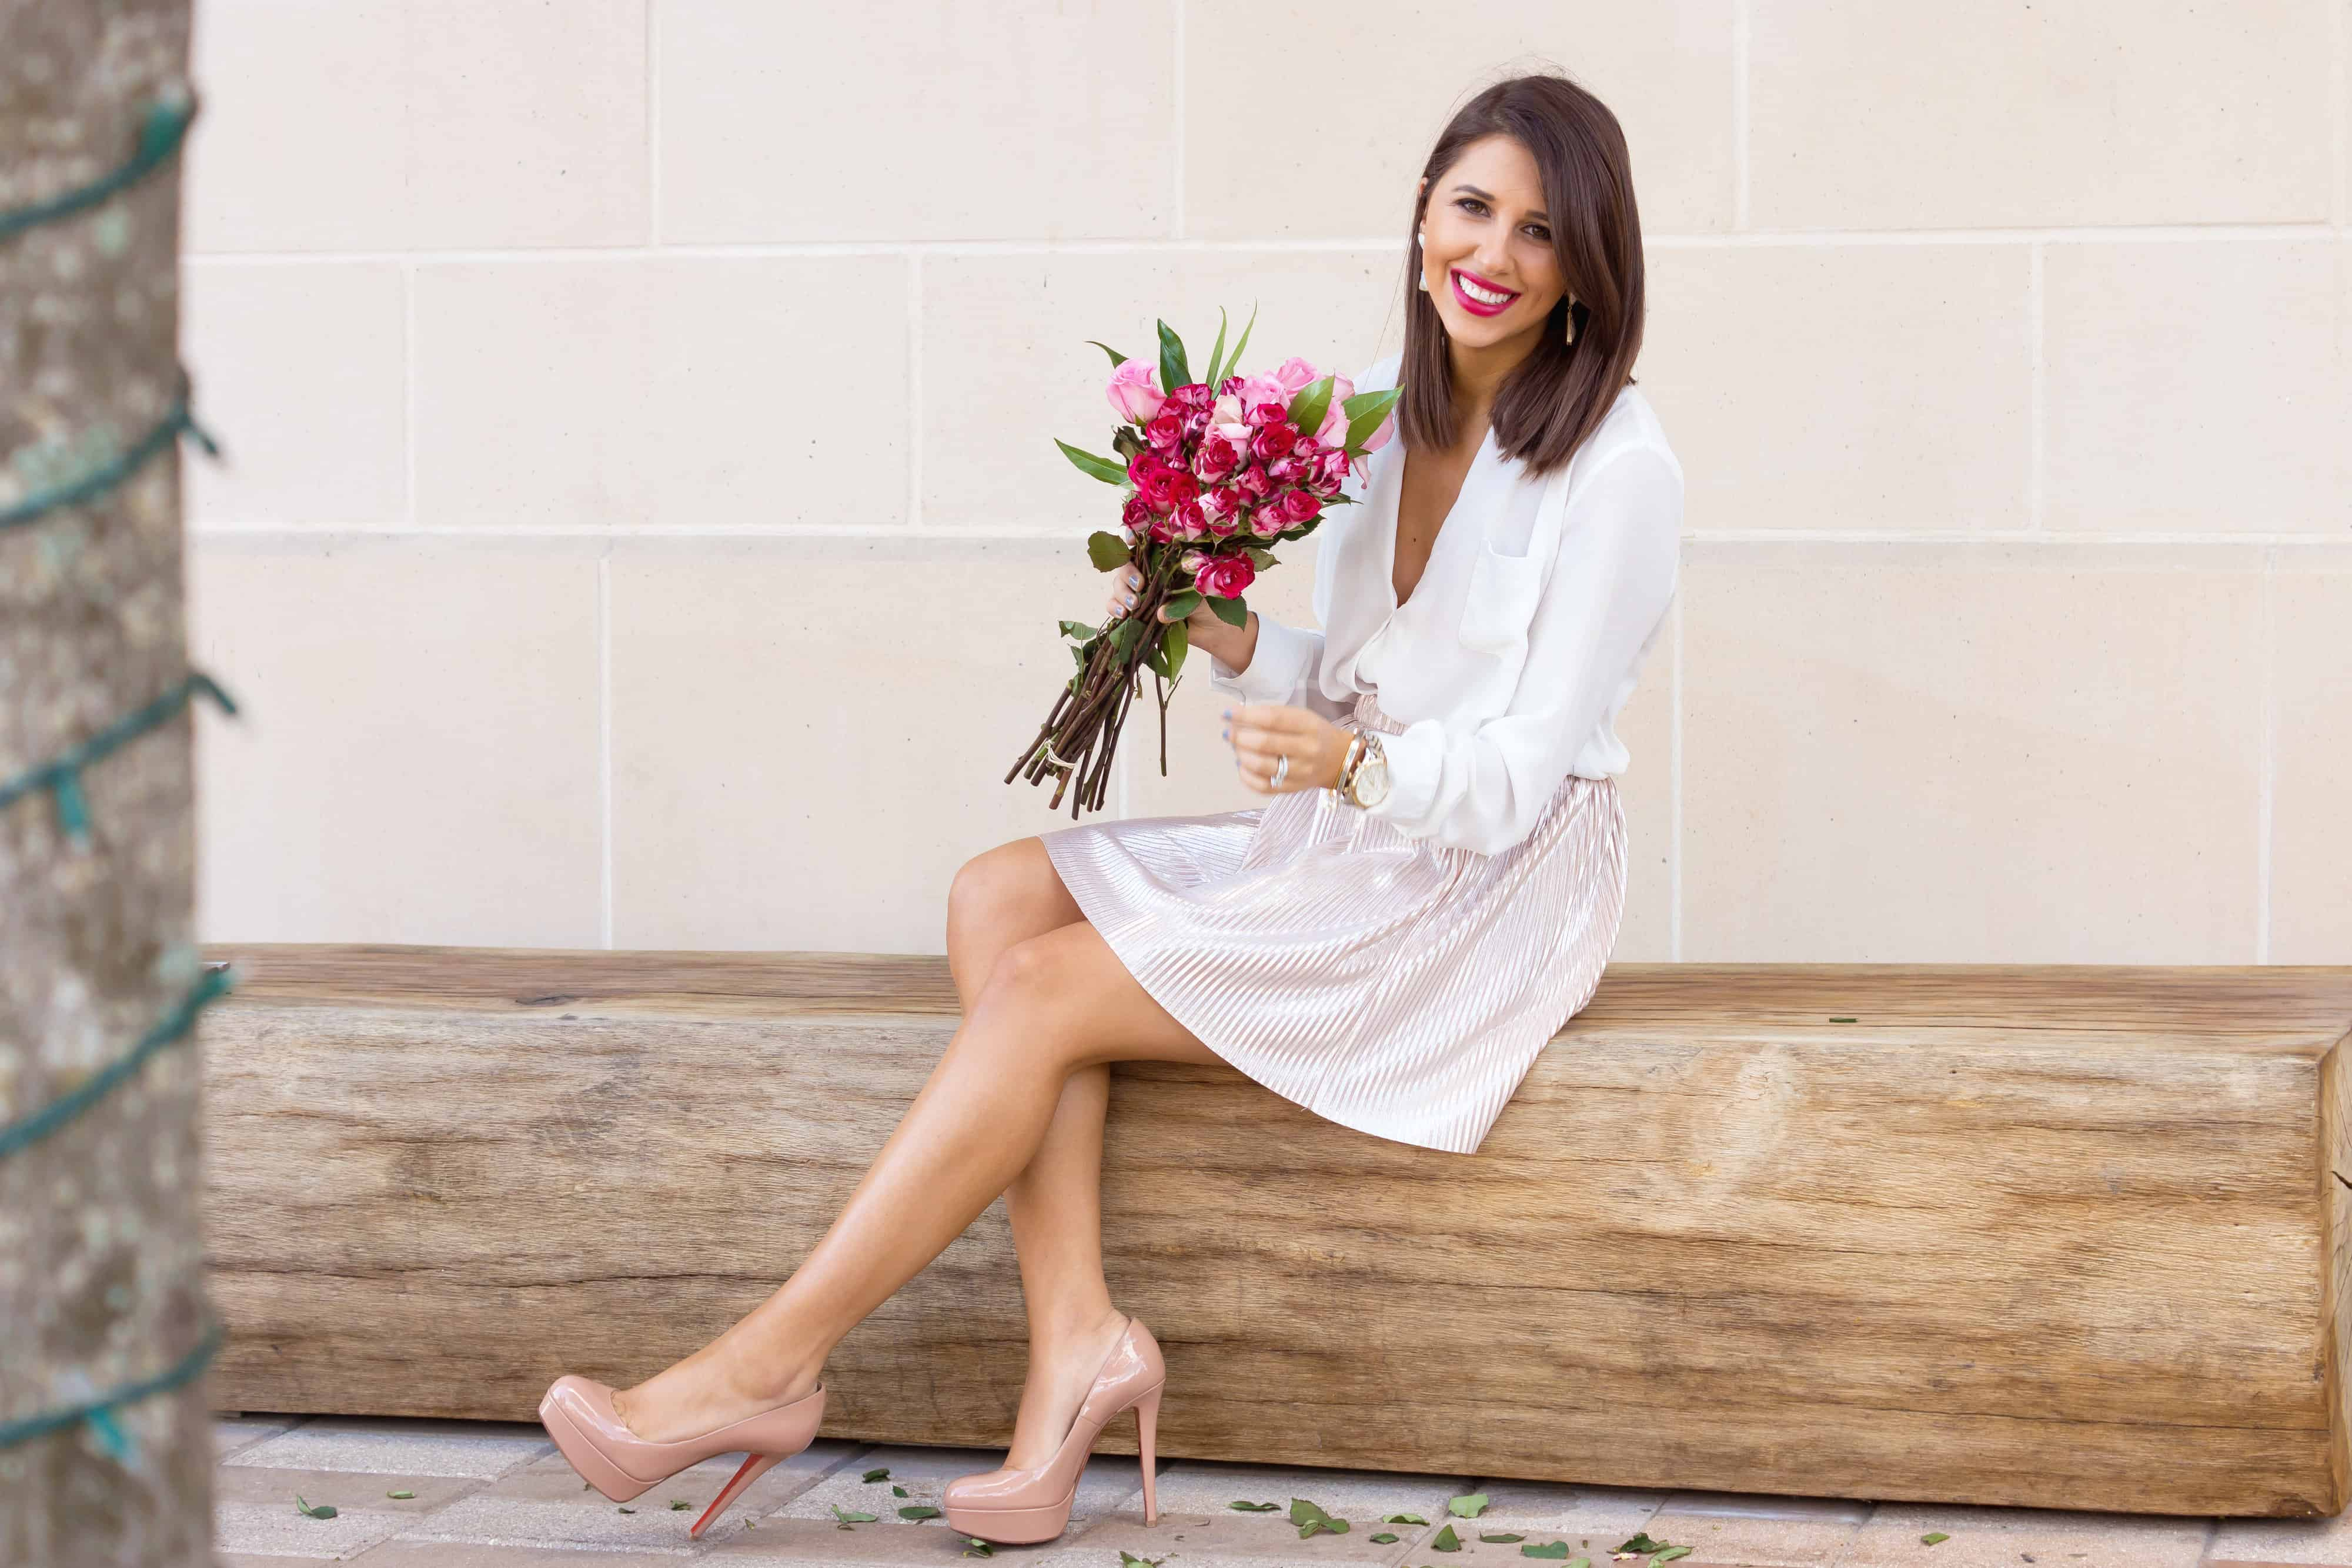 View More: http://diamondoakphotography.pass.us/valentines_011916